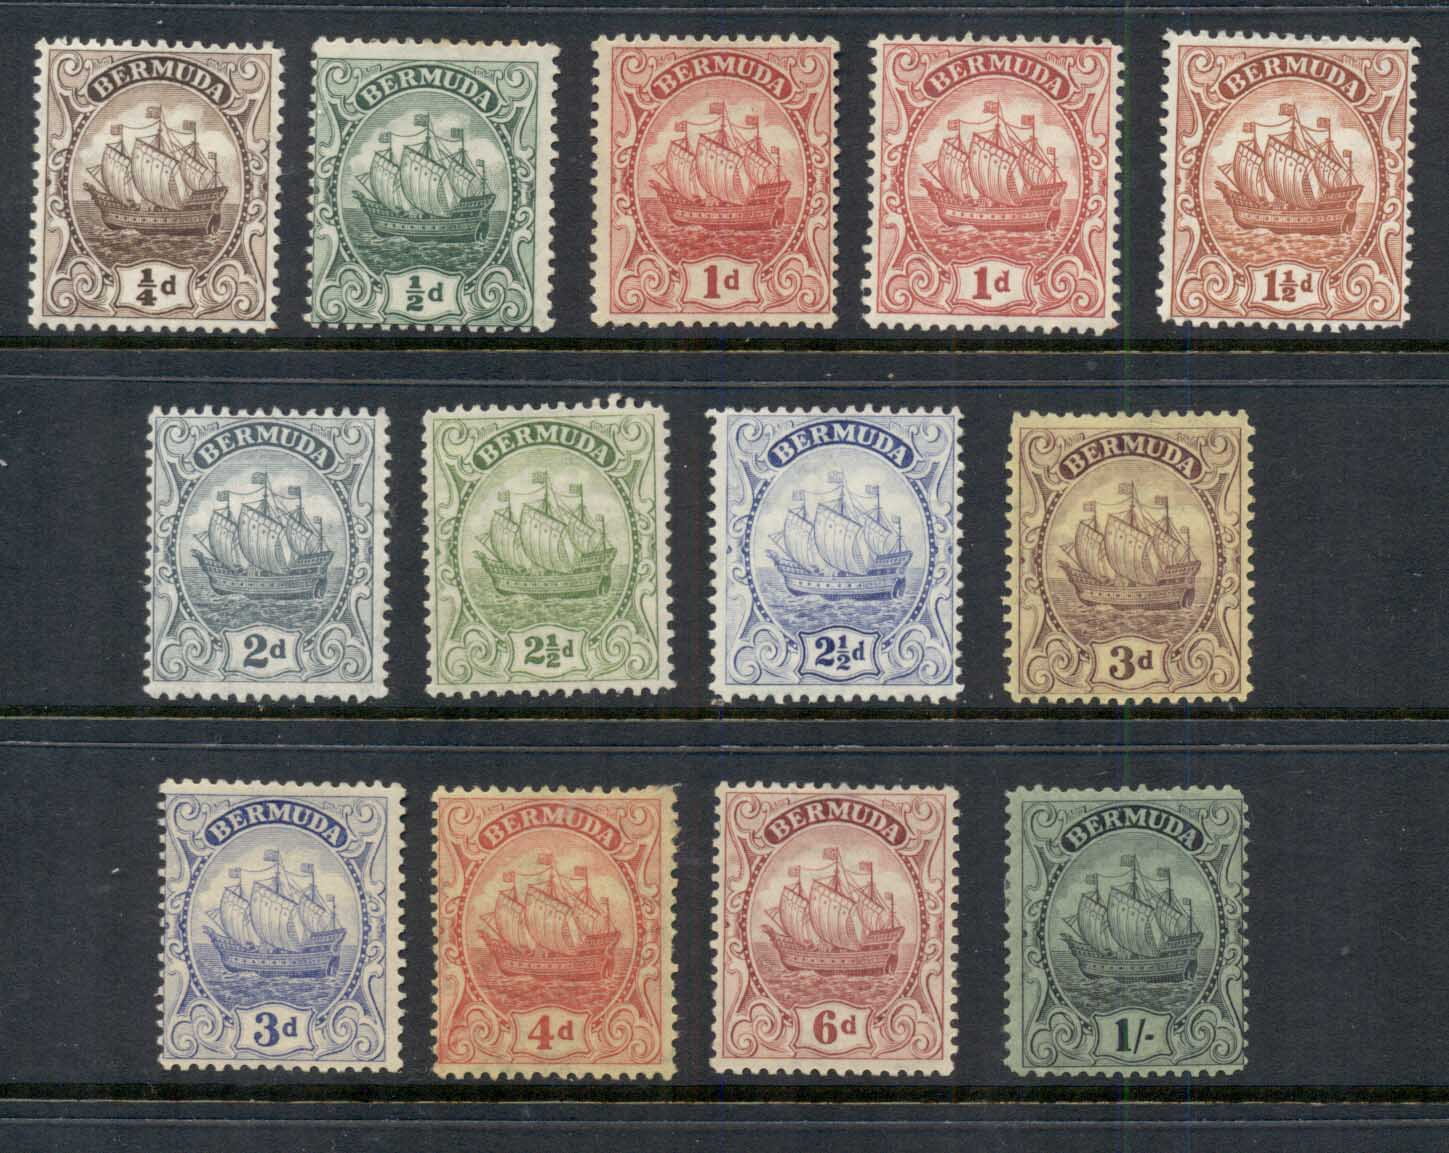 Bermuda 19222-34 Ship, Caravel Wmk. Multiple Crown & Script asst to 1/- MLH